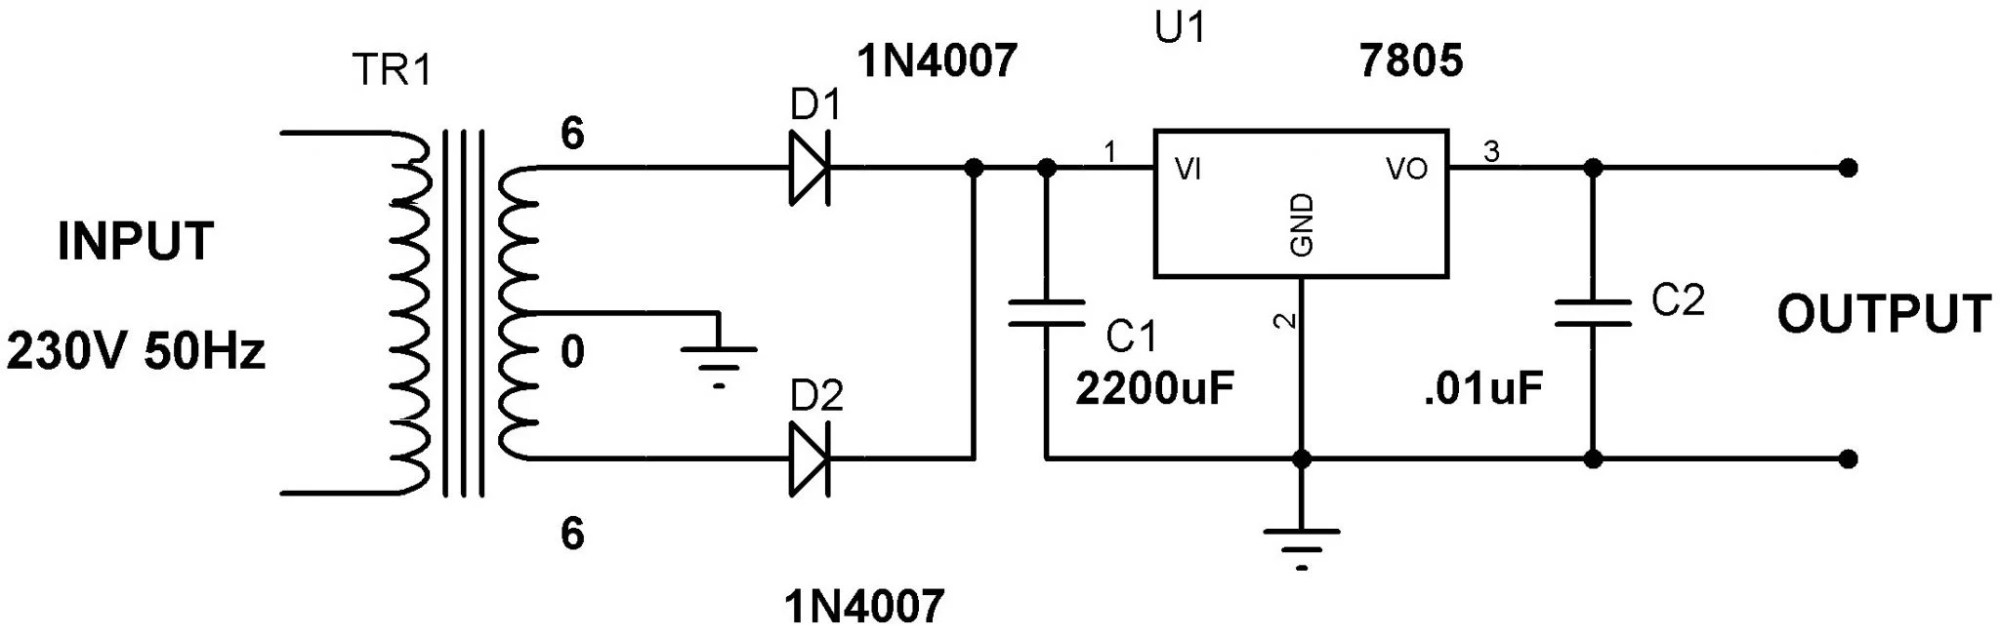 hight resolution of 5v power supply circuit using 7805 voltage regulator